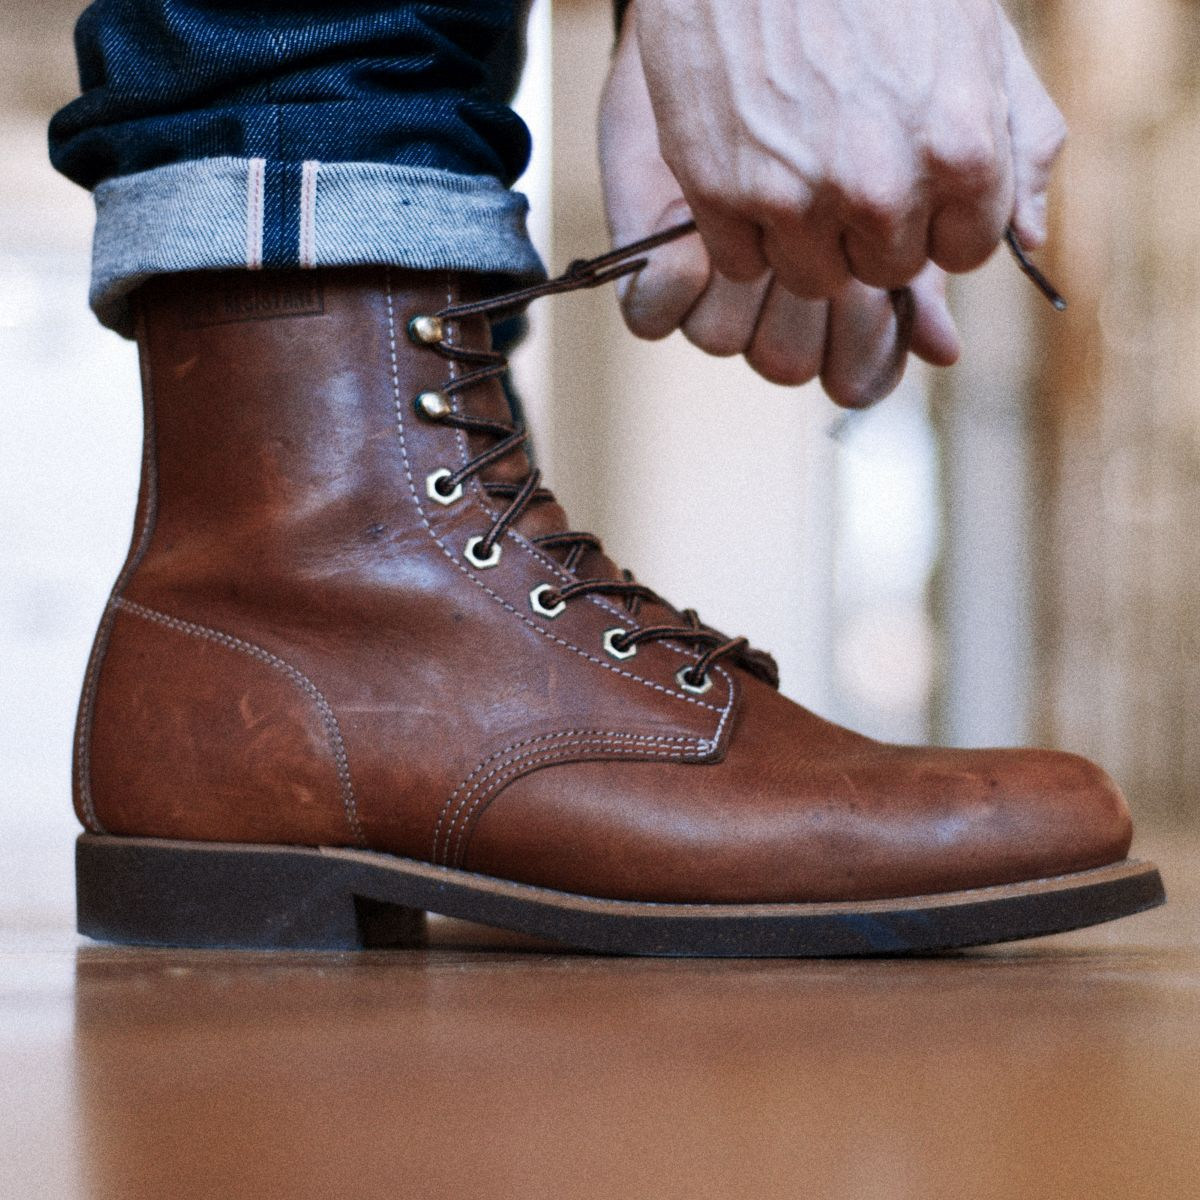 great leather boots with wash cuffed talk